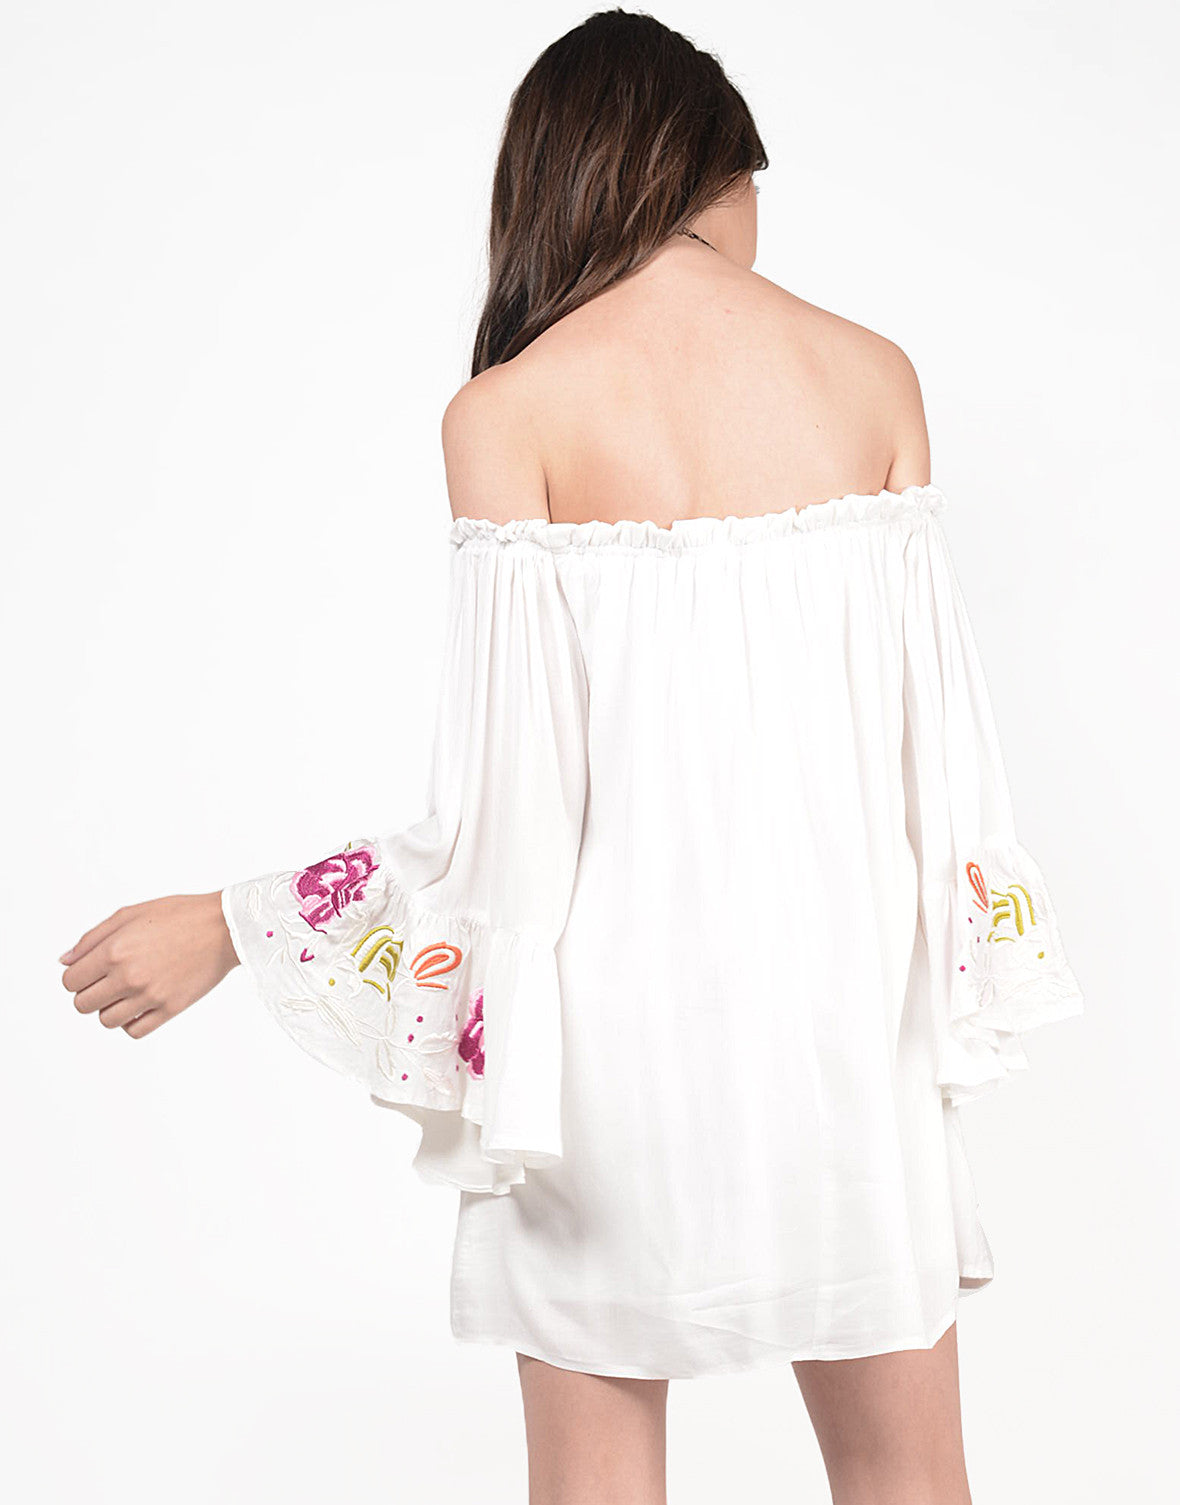 Back View of Floral Off the Shoulder Dress